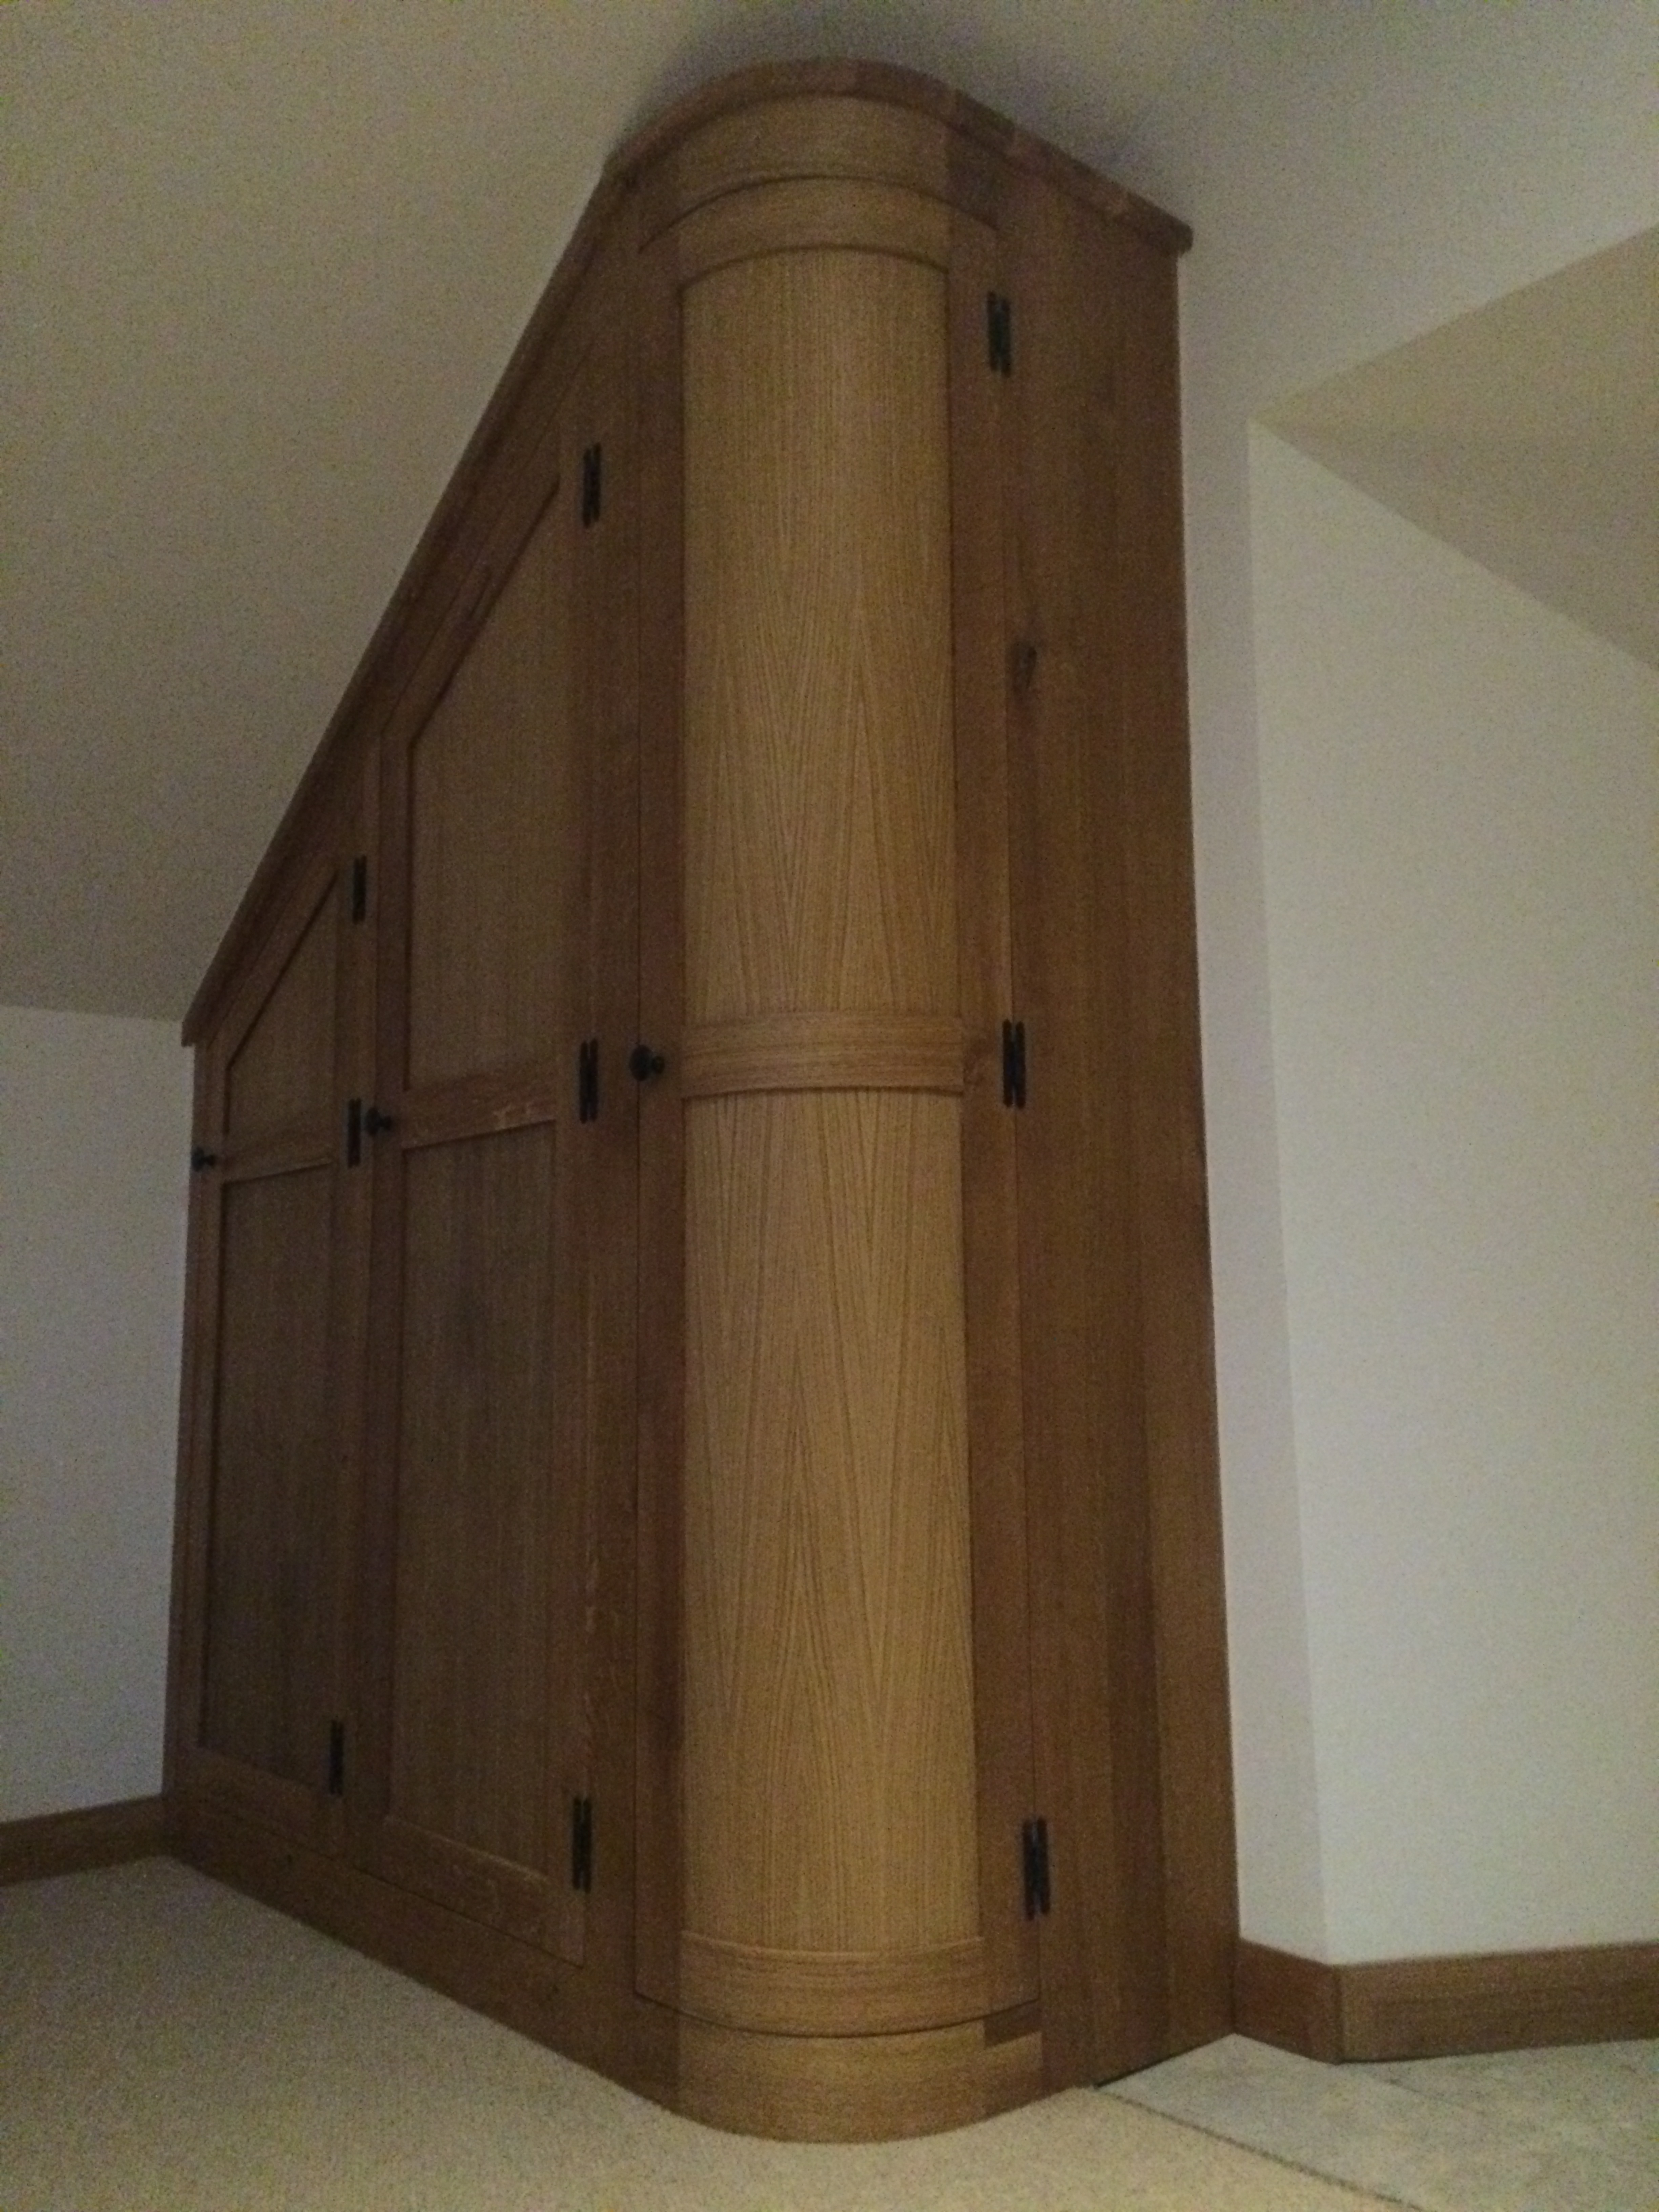 Curved Wardrobe Doors Create Real Interest In This Fitted Dressing Regarding Curved Wardrobe Doors (Image 3 of 15)